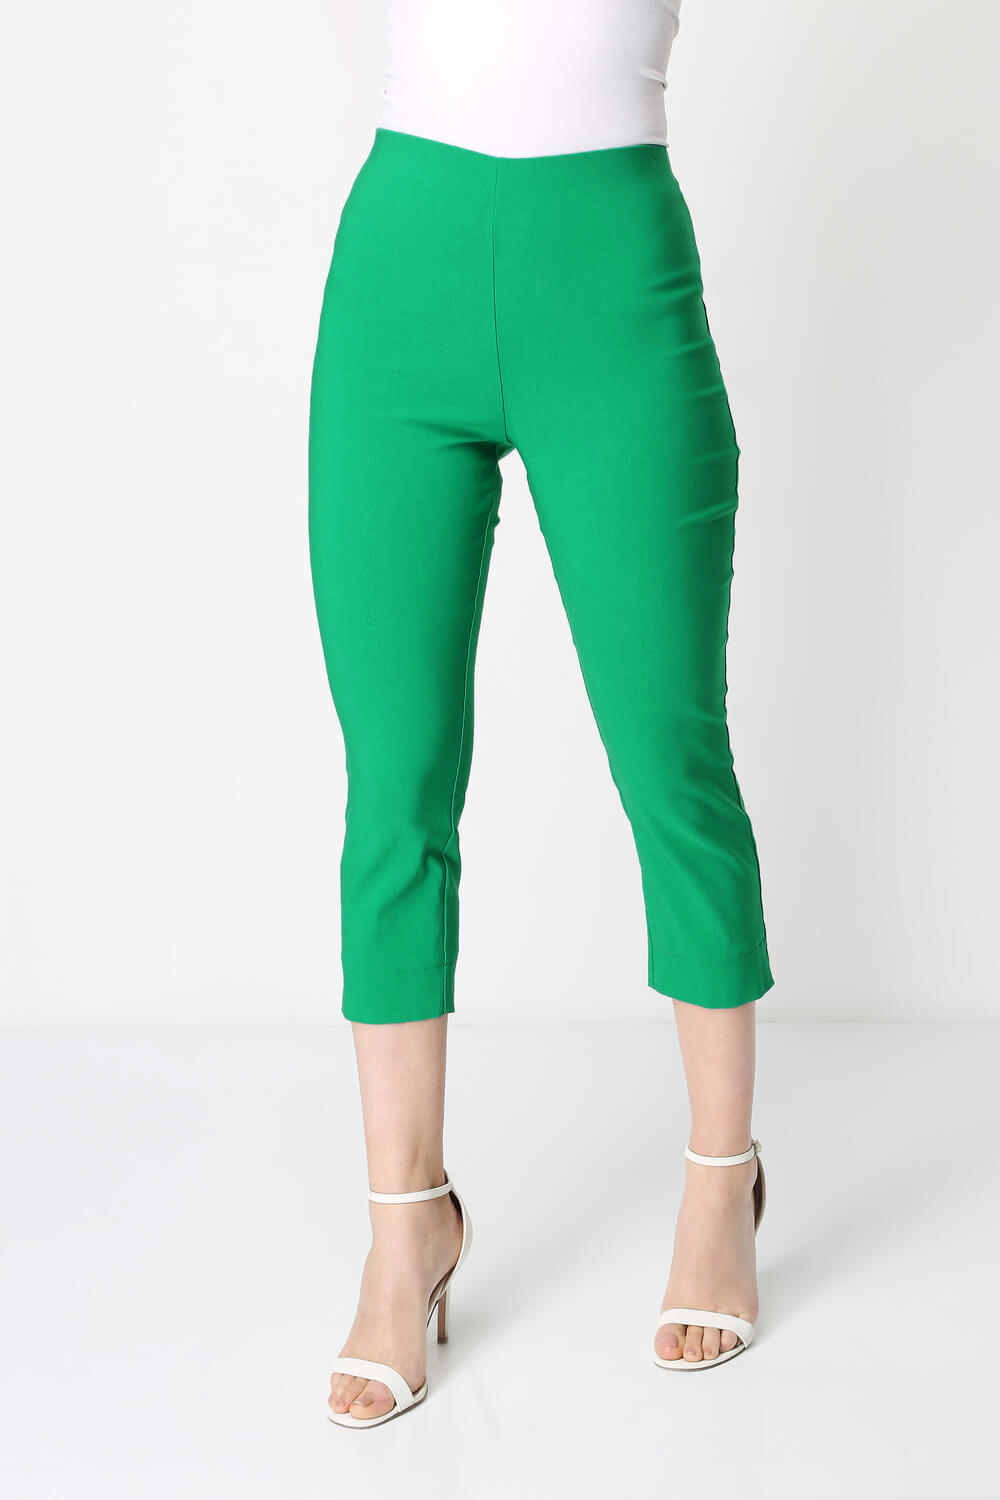 Roman-Originals-Women-Cropped-Stretch-Bengaline-Capri-Trousers-3-4-Thick-Legging 縮圖 245